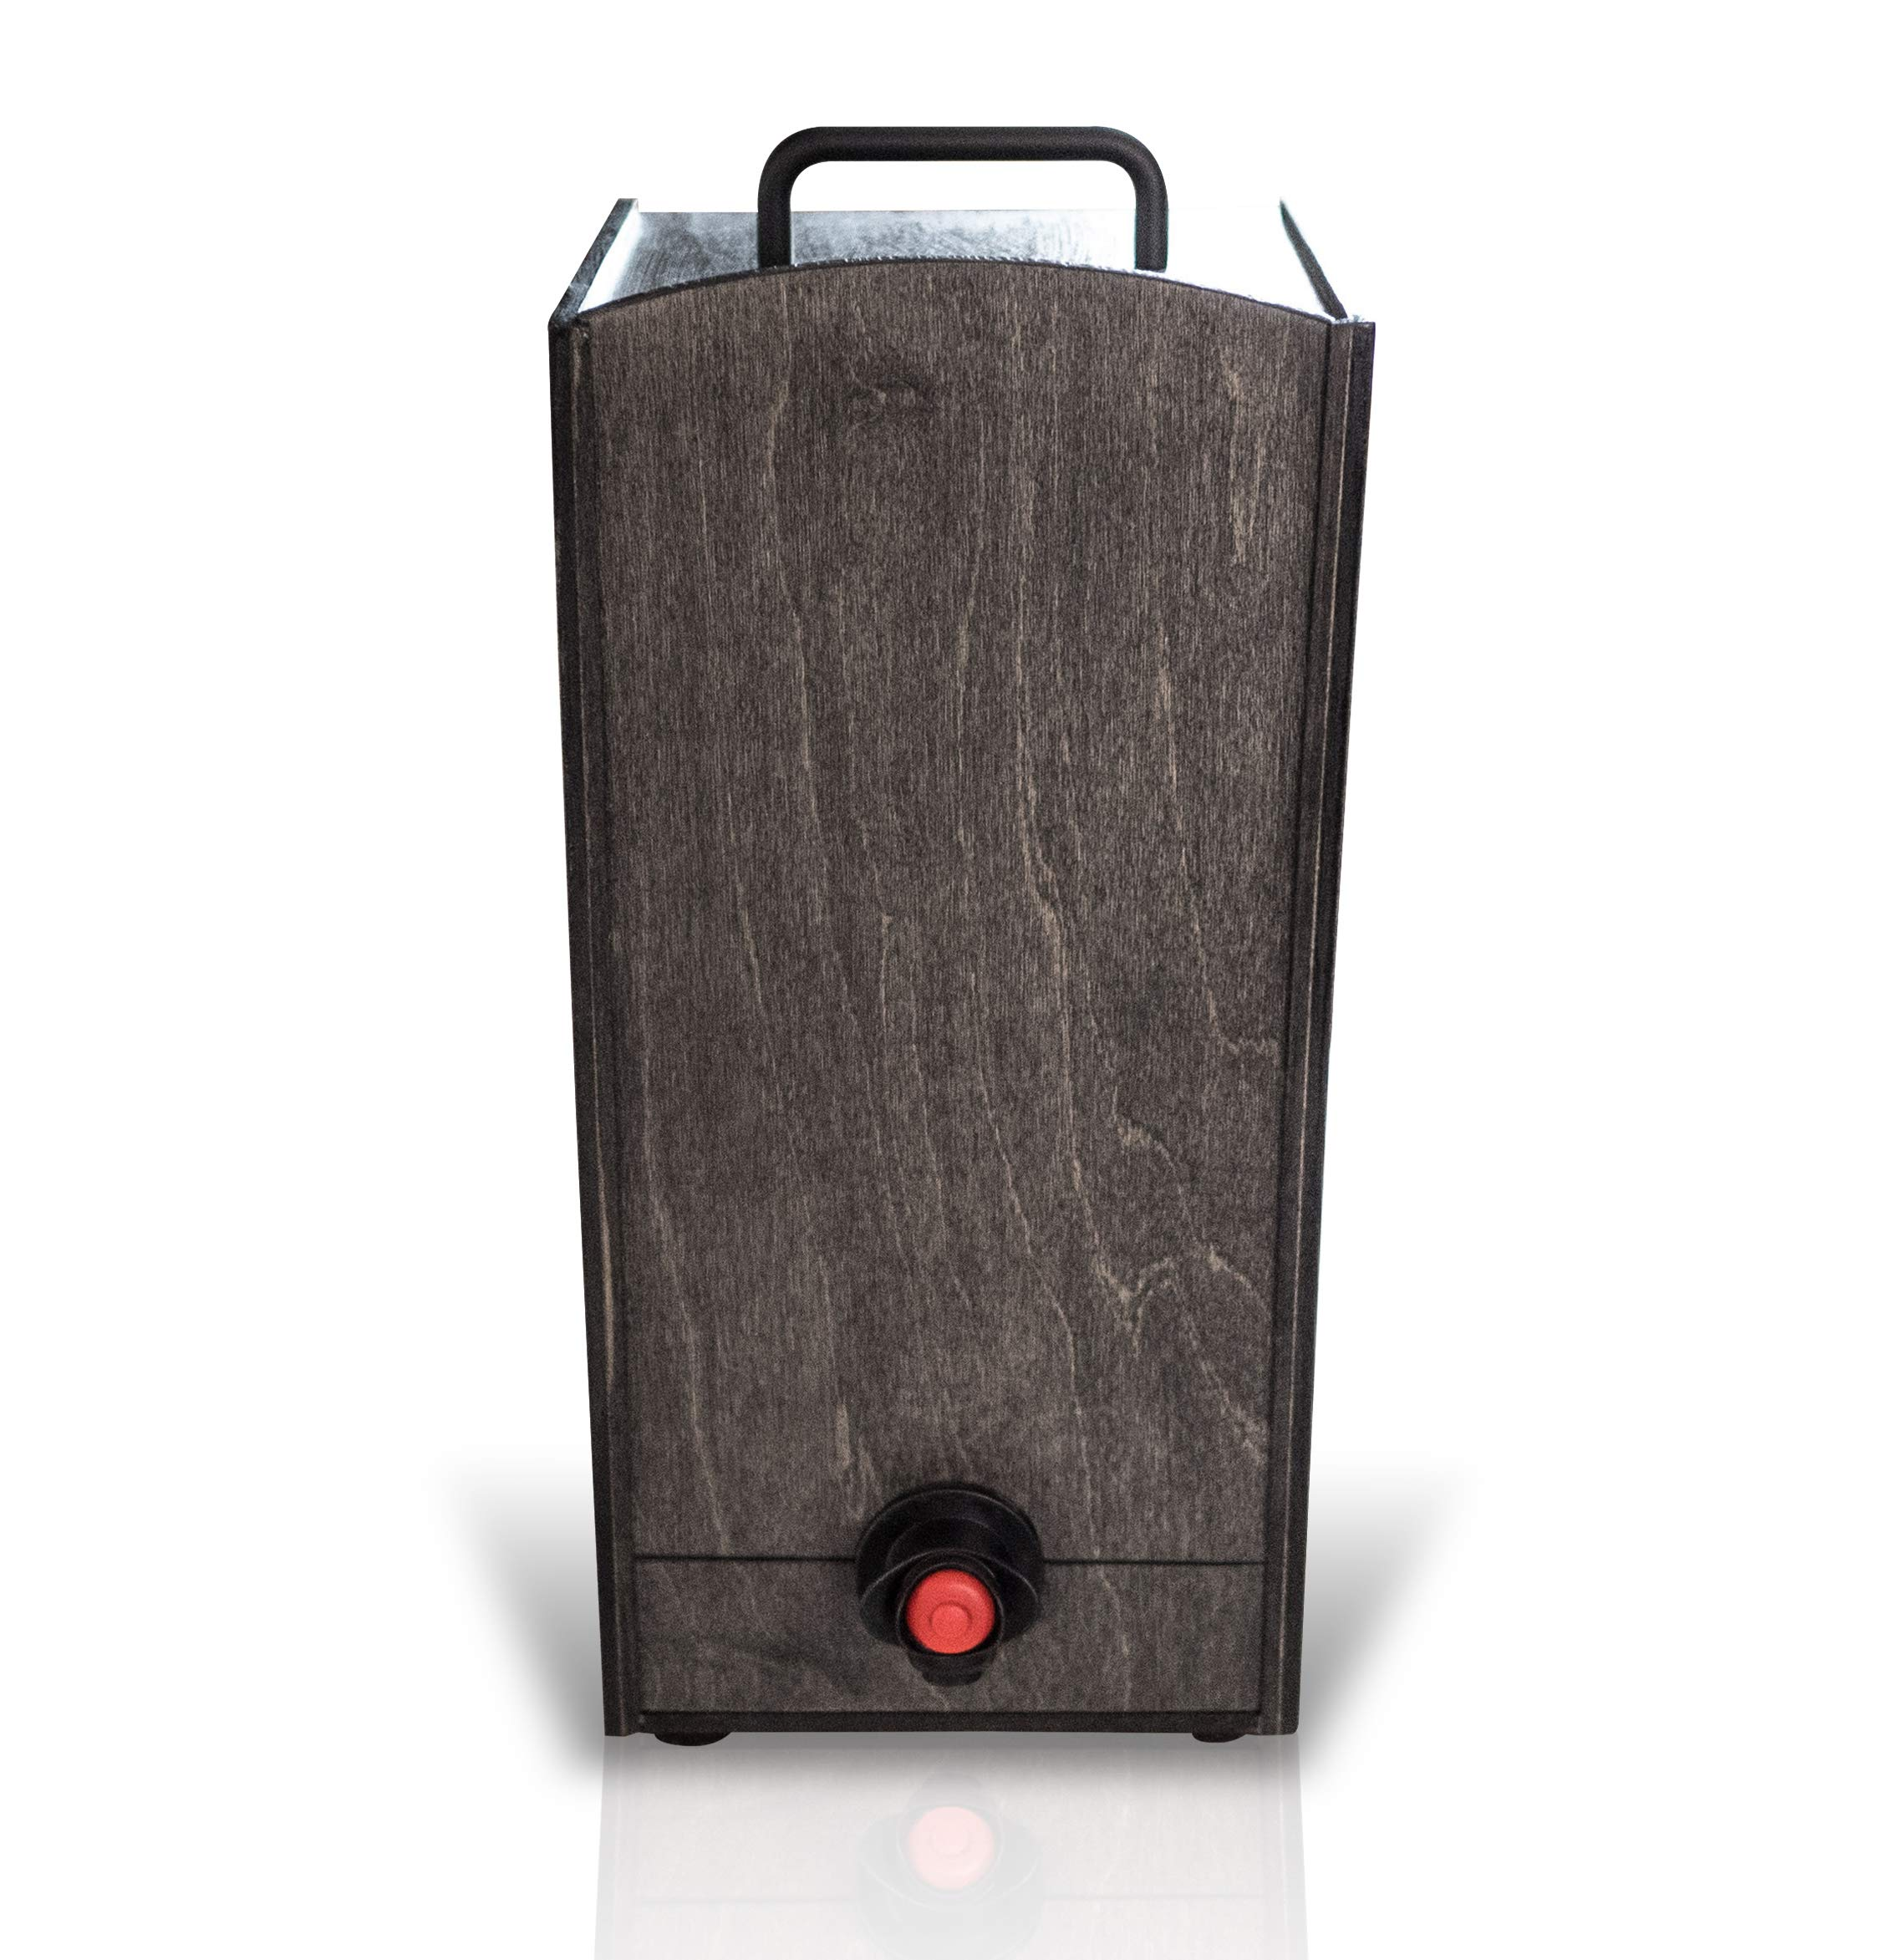 Boxed Wine Wood Case by Winewood | Black Color | Fits 3 Liter Boxes of Wine | Holder, Dispenser, Cover for Boxed Wine